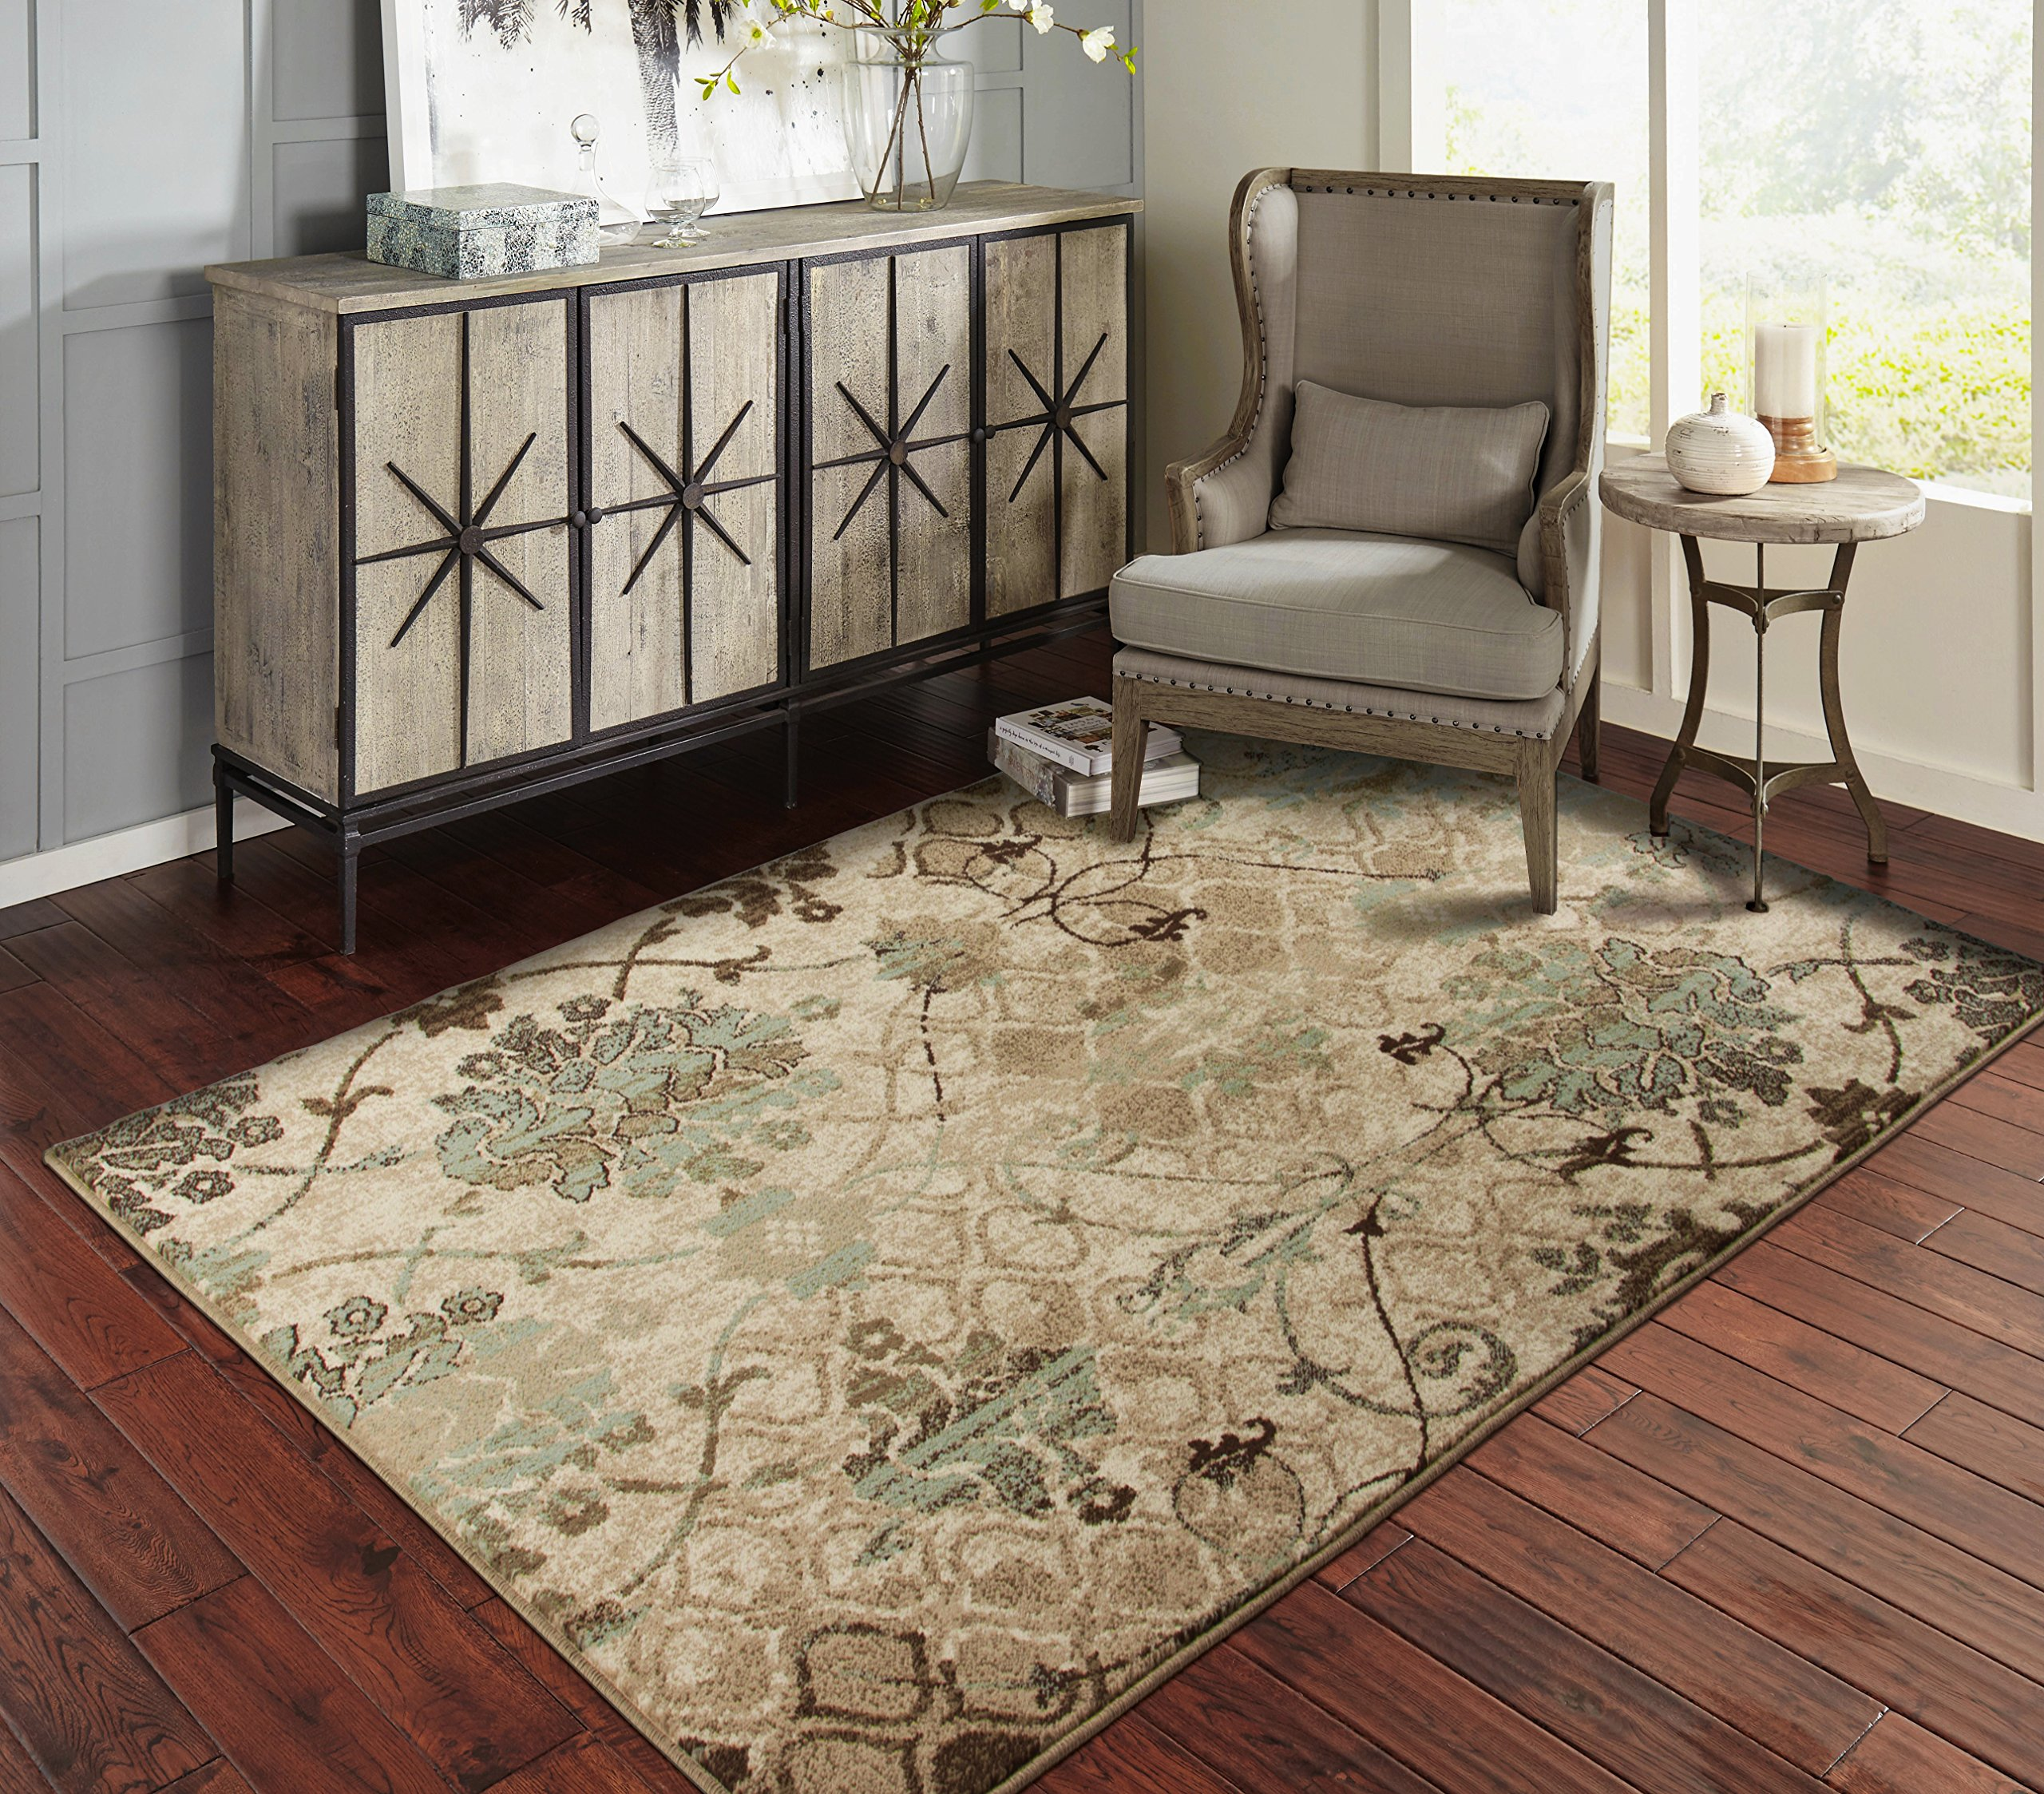 A.S Quality Rugs Modern Distressed Rugs for Living Room 5x7 Blue Clearance Rugs for Bedroom 5x8 by A.S Quality Rugs